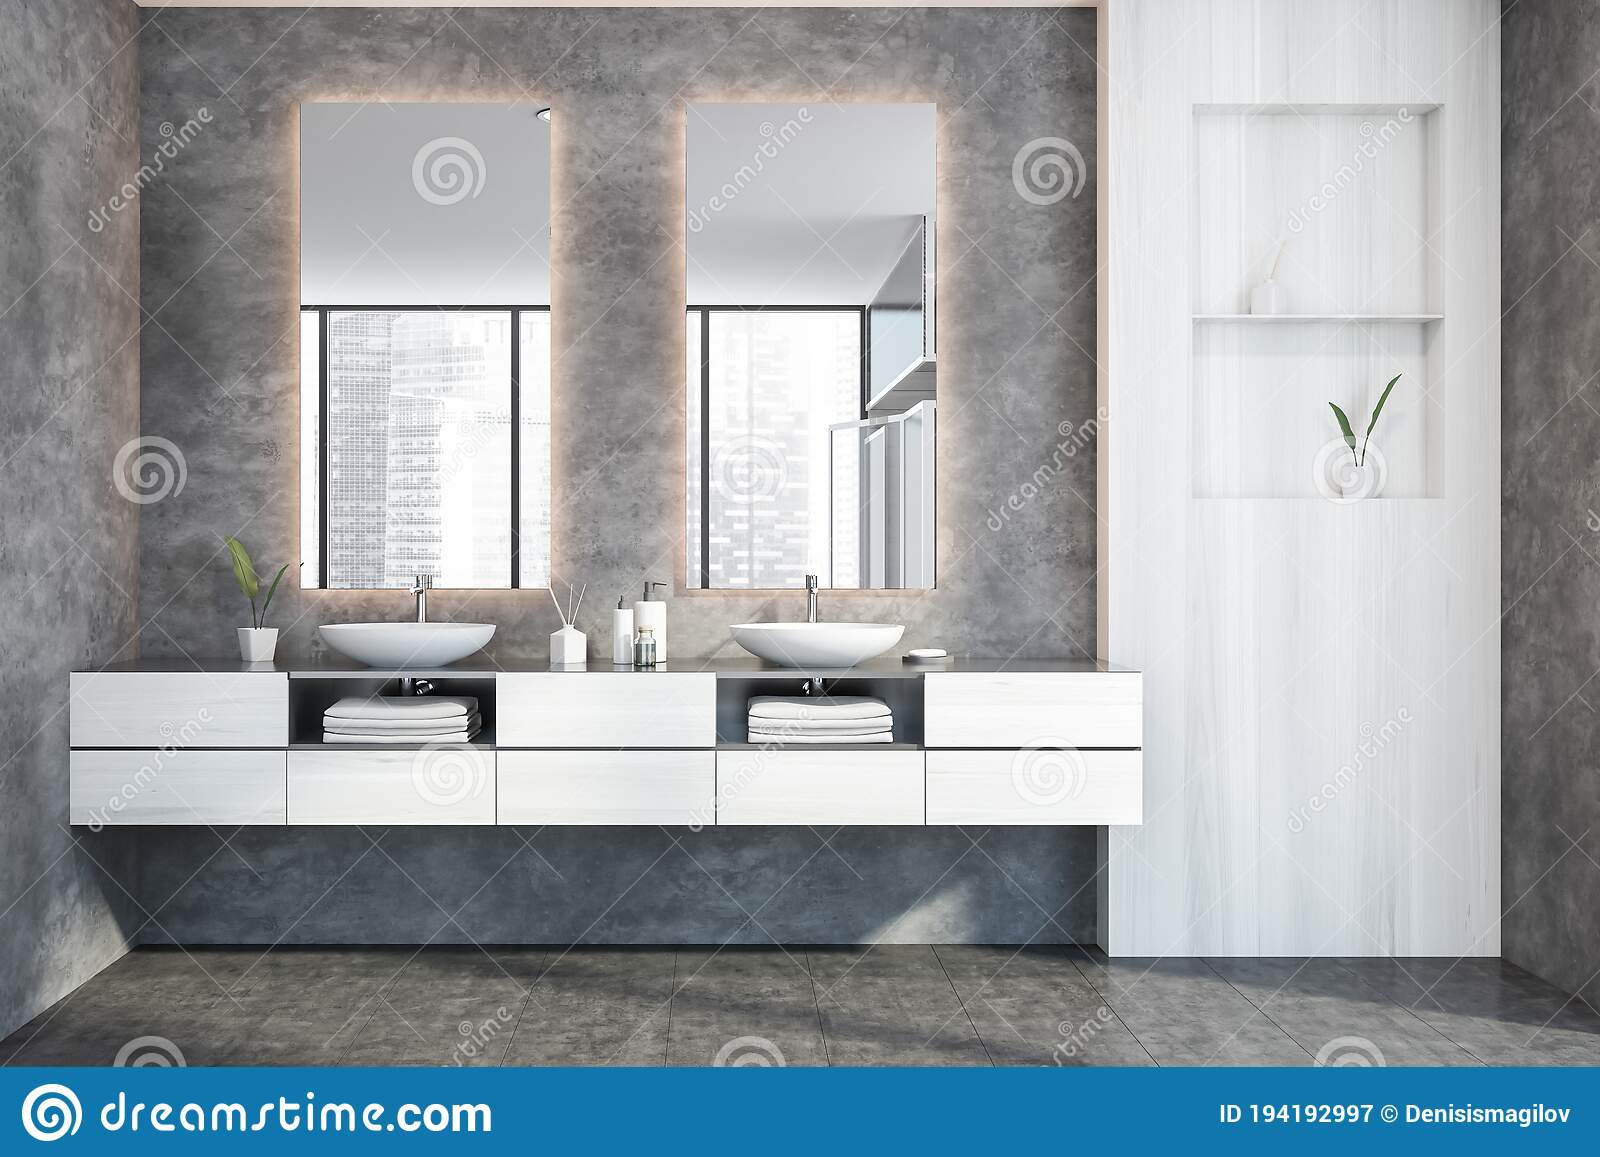 double sink in white and concrete bathroom stock illustration illustration of exclusive luxury 194192997